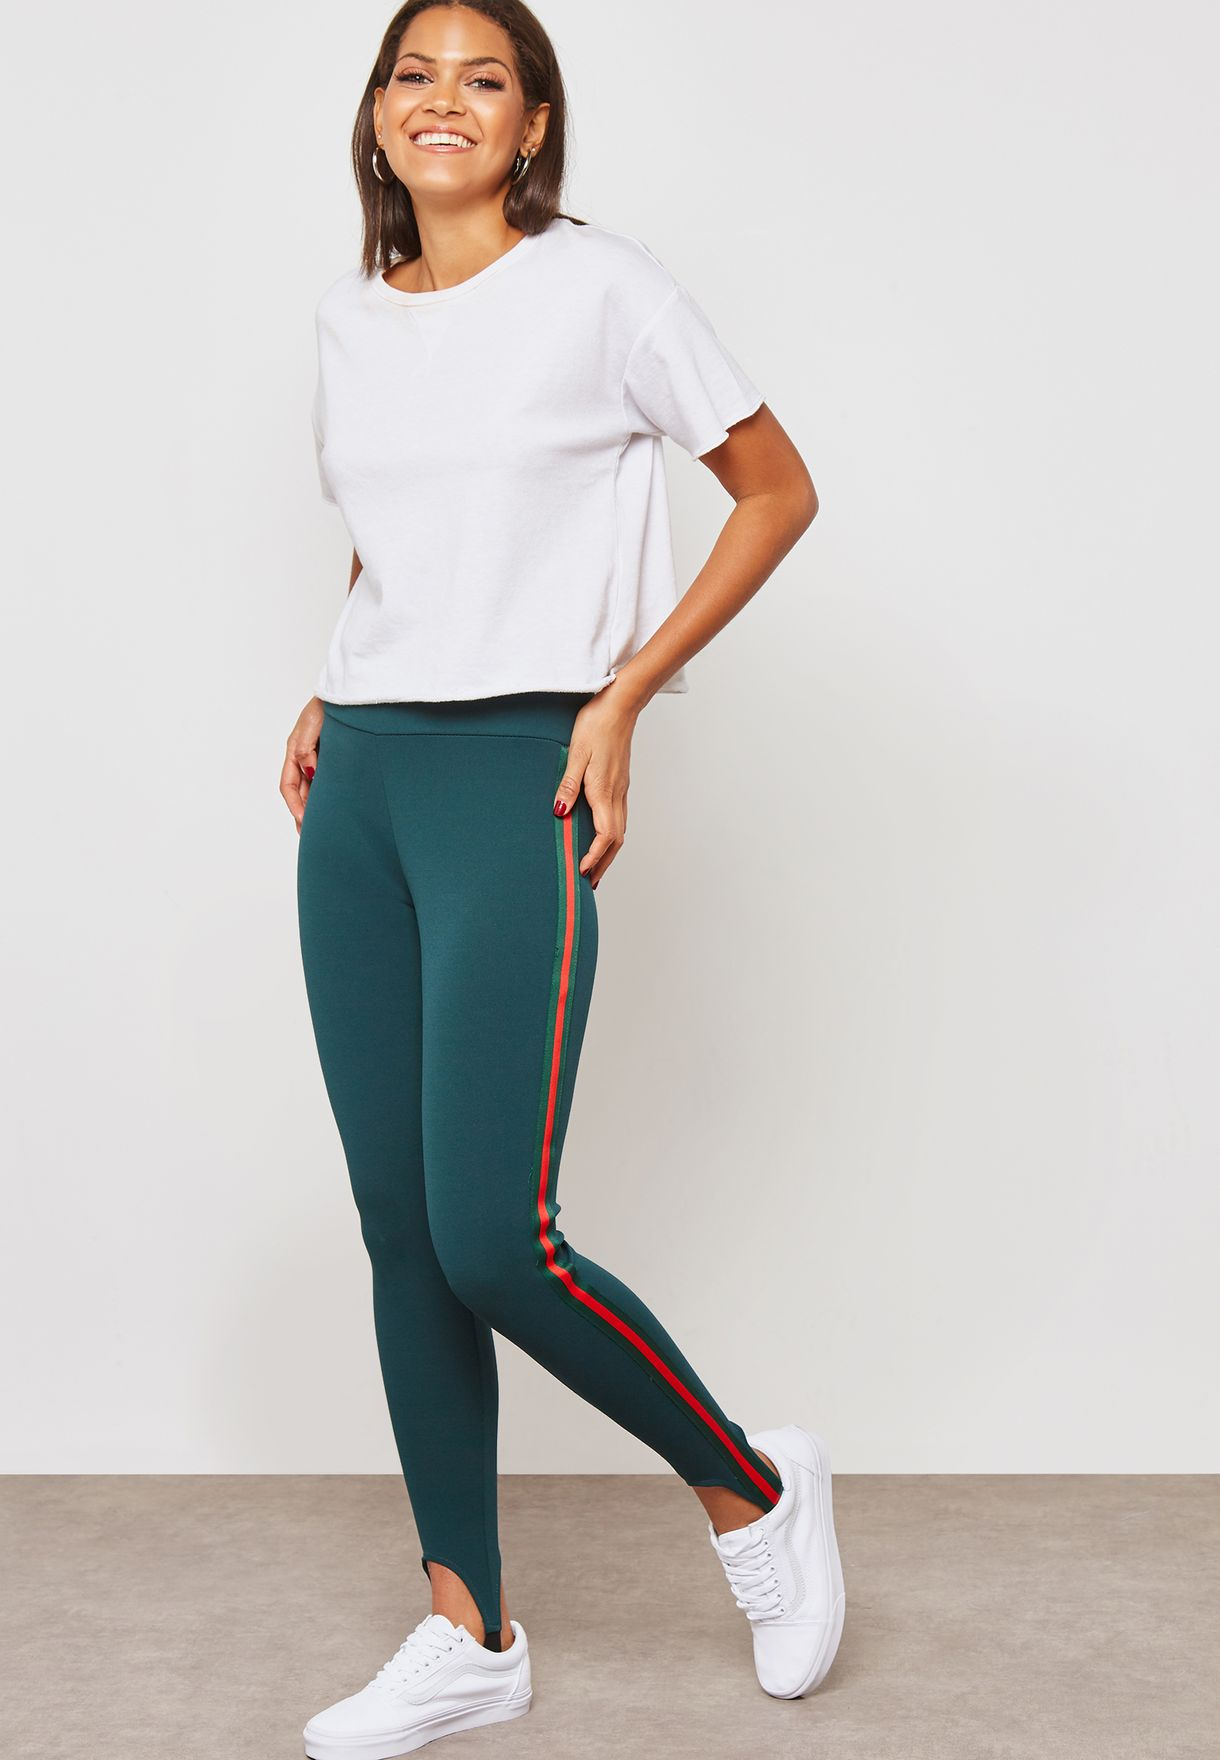 0a82adb77af805 Shop Ginger green Contrast Side Paneled Stirrup Leggings NA09-7893 for Women  in UAE - GI121AT88UCT